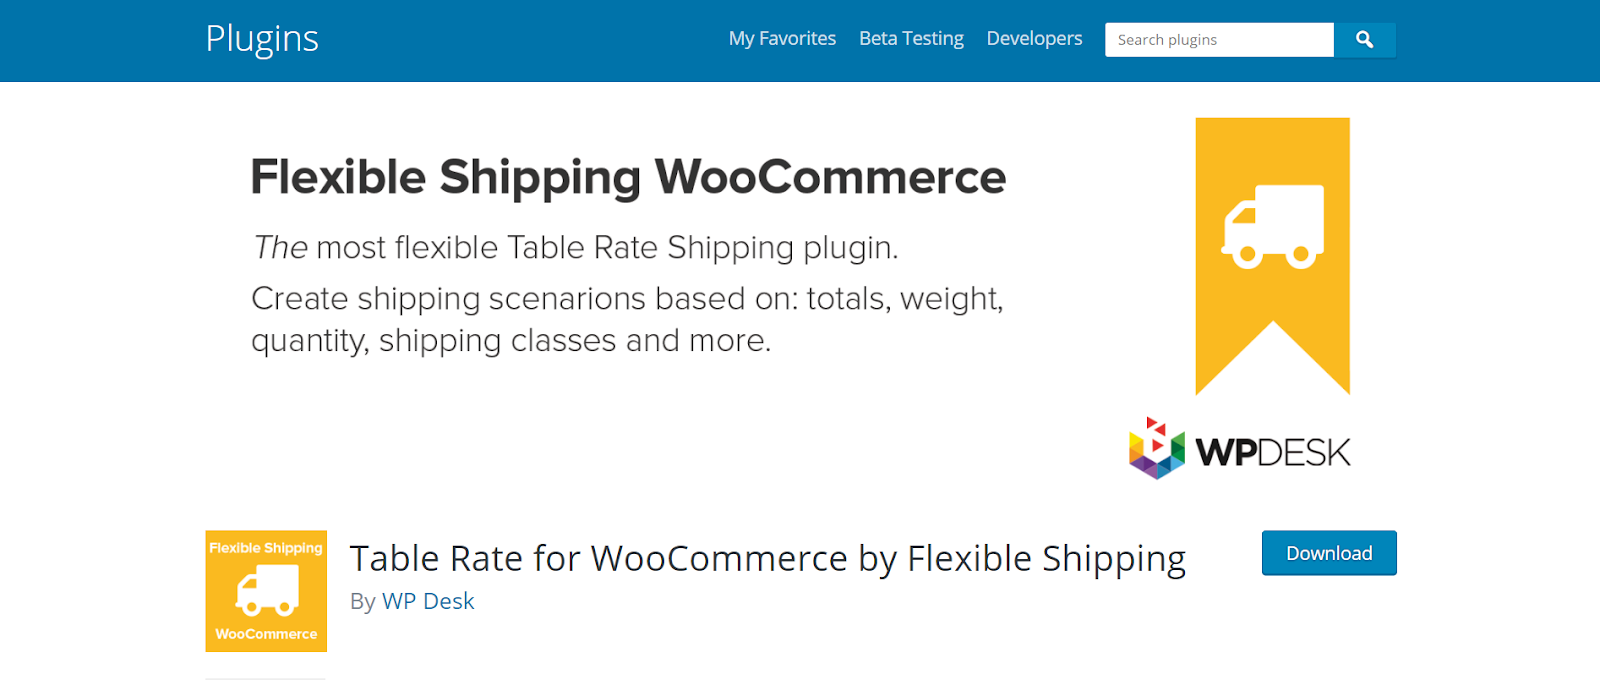 flexible shipping, woocommerce shipping plugins